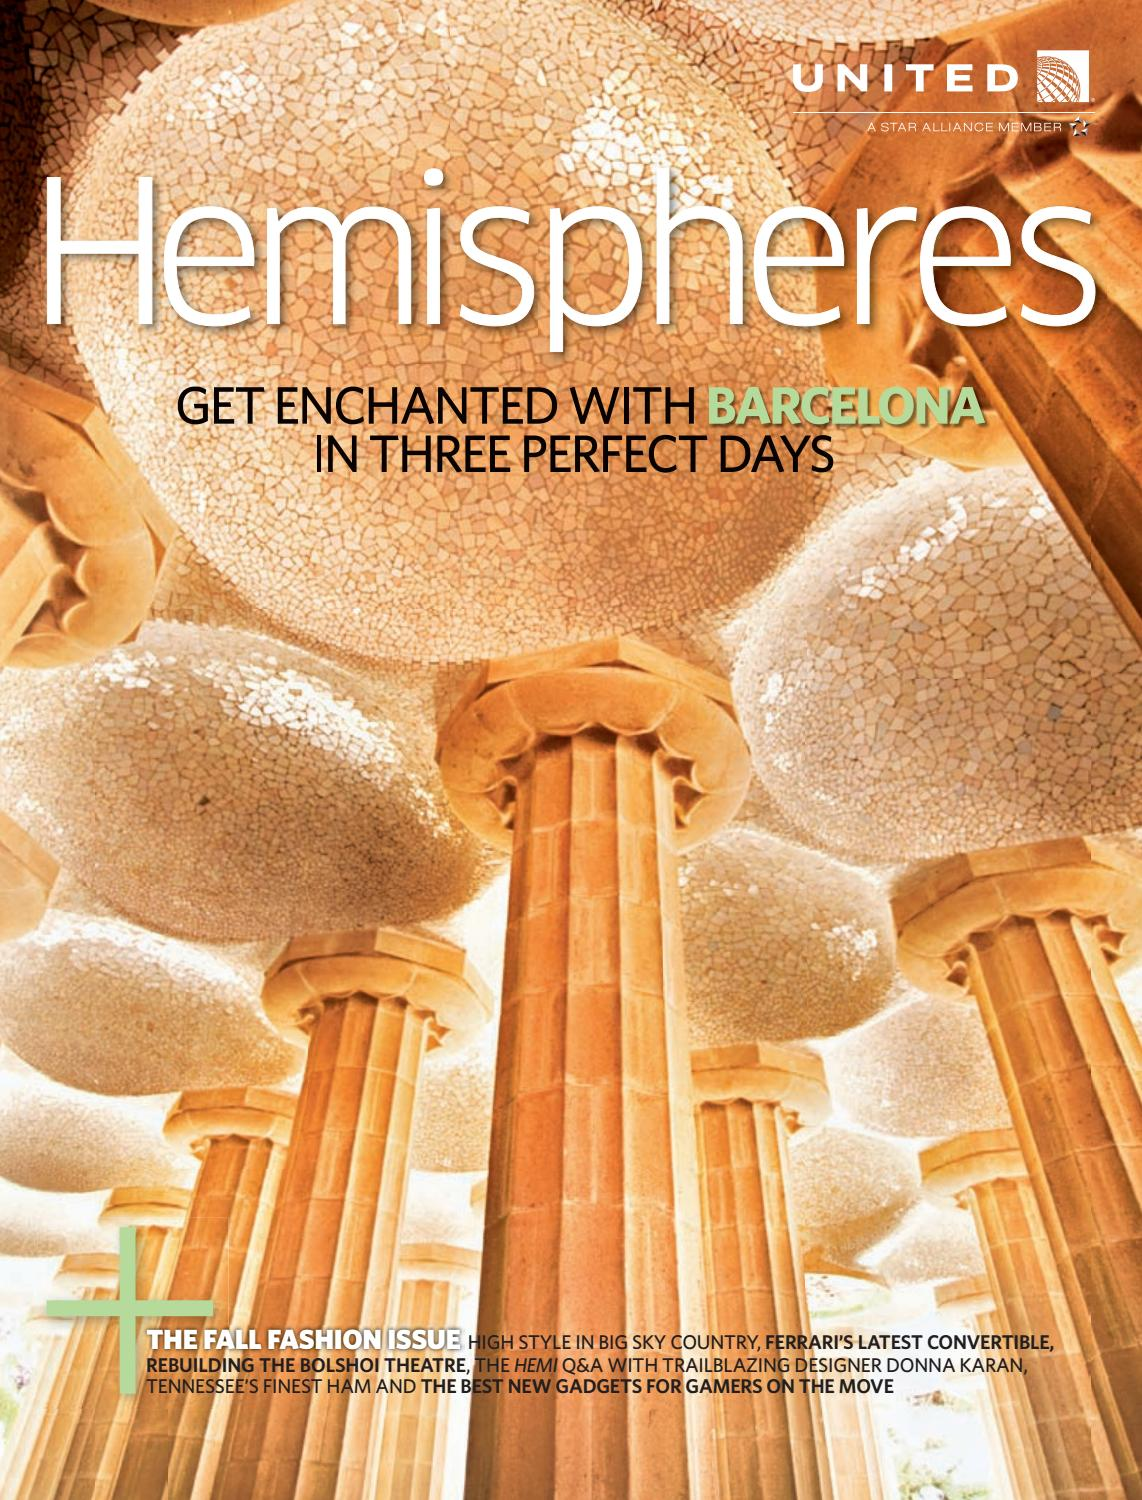 United Airlines Hemispheres Magazine September 2011 by Ahmed